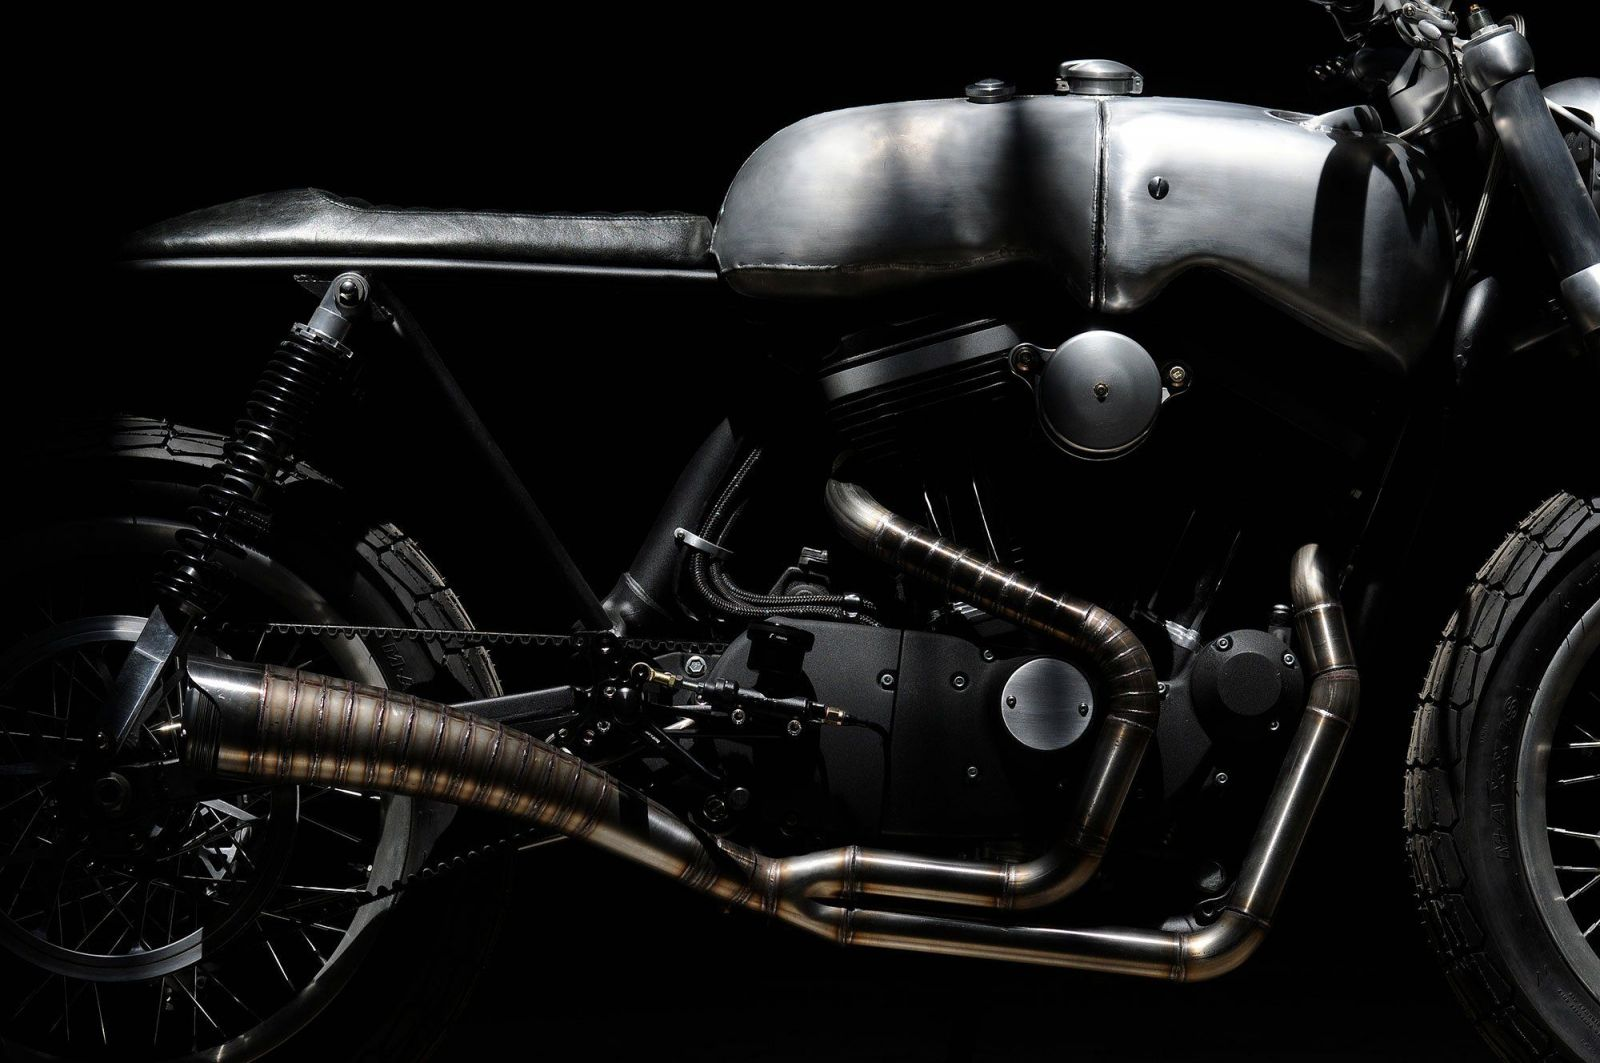 The Hardley custom Harley-Davidson by Revival Cycles exhaust